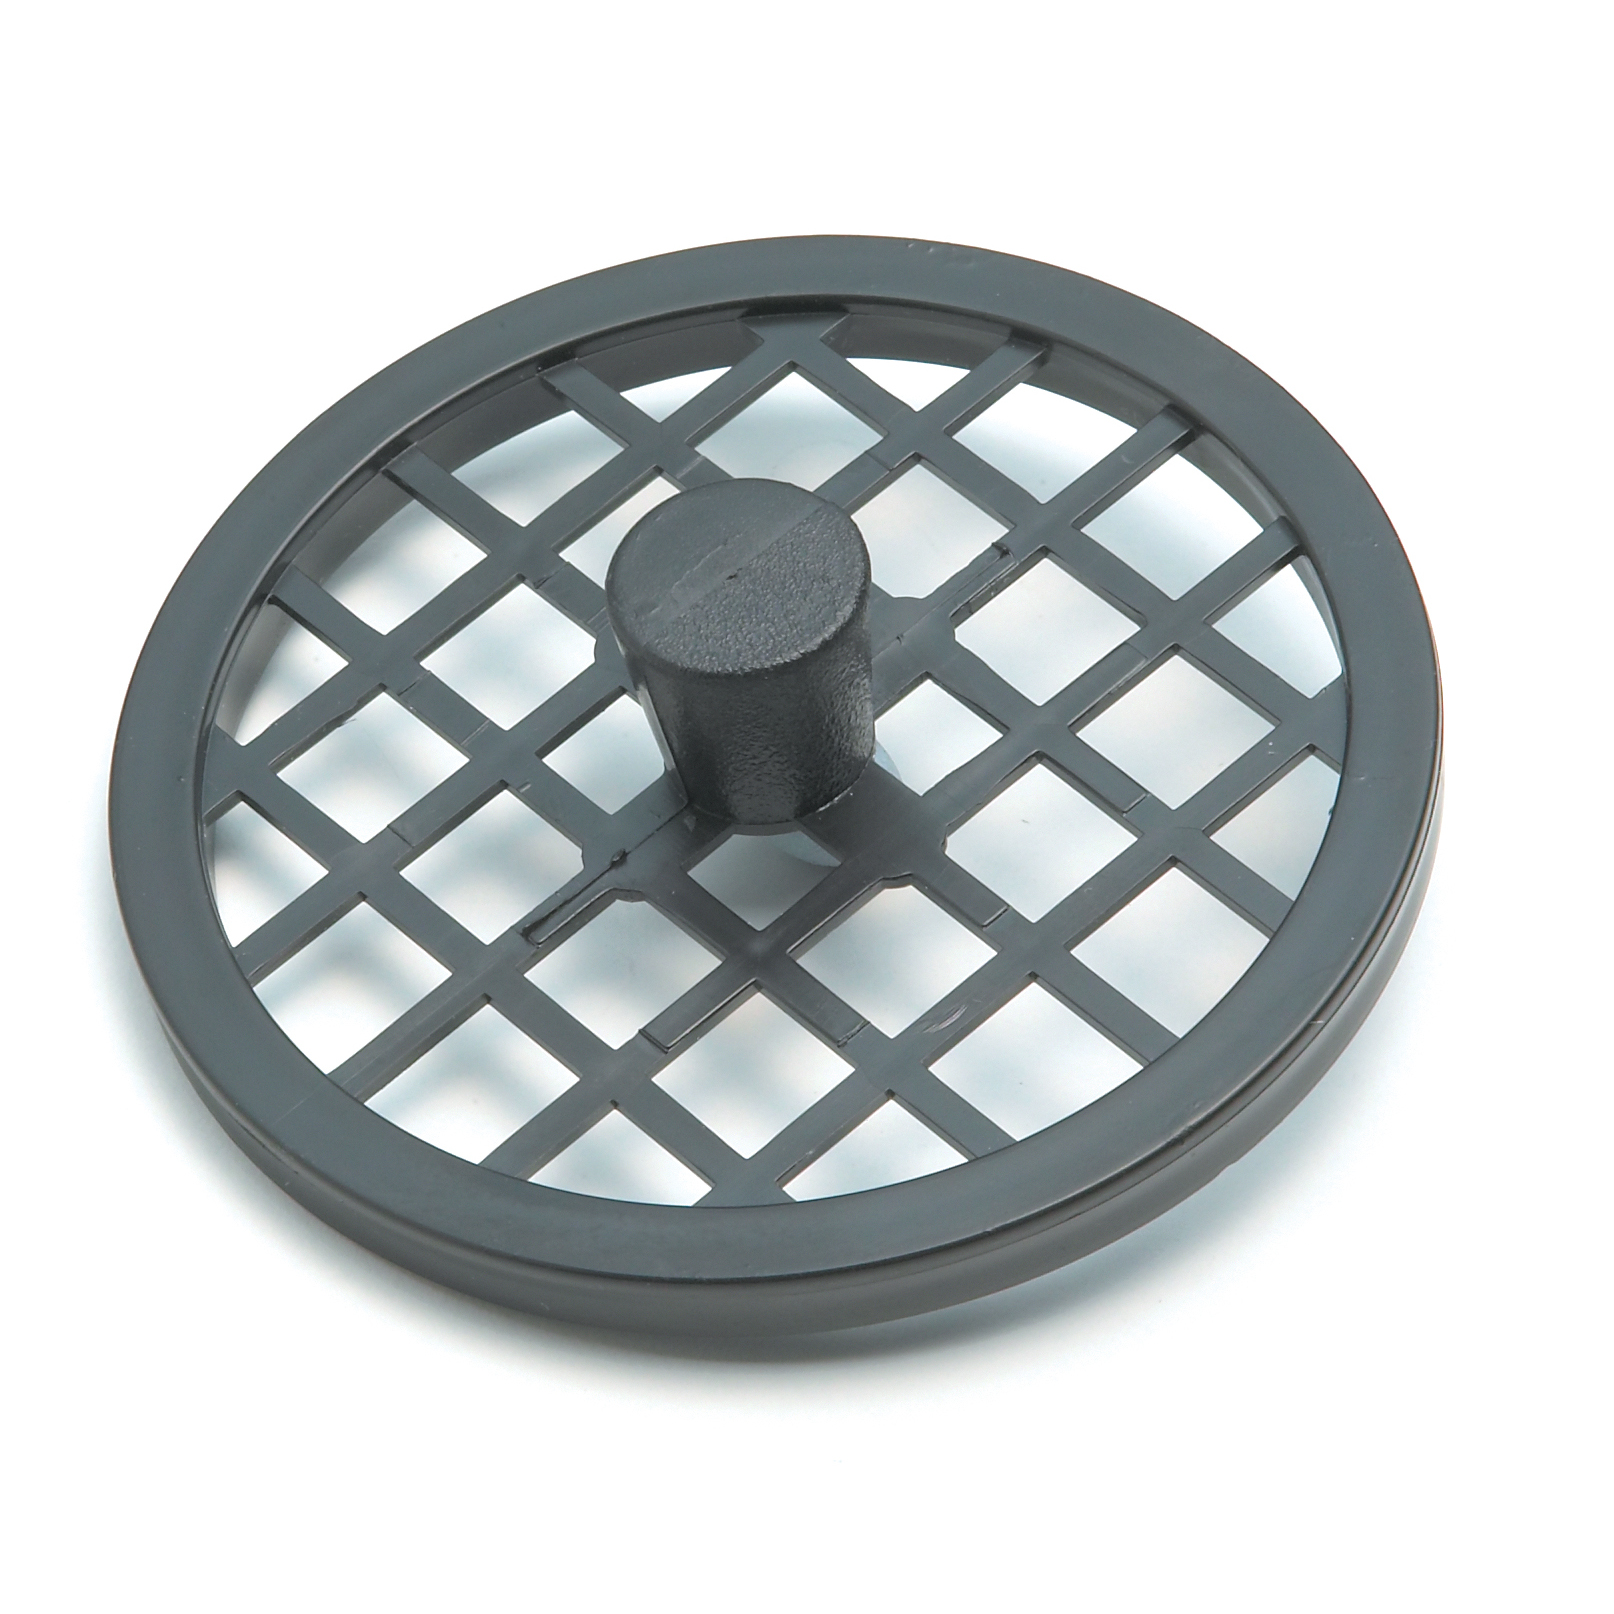 Foxrun Gray 3.25 Inch Garbage Disposal Safety Screen